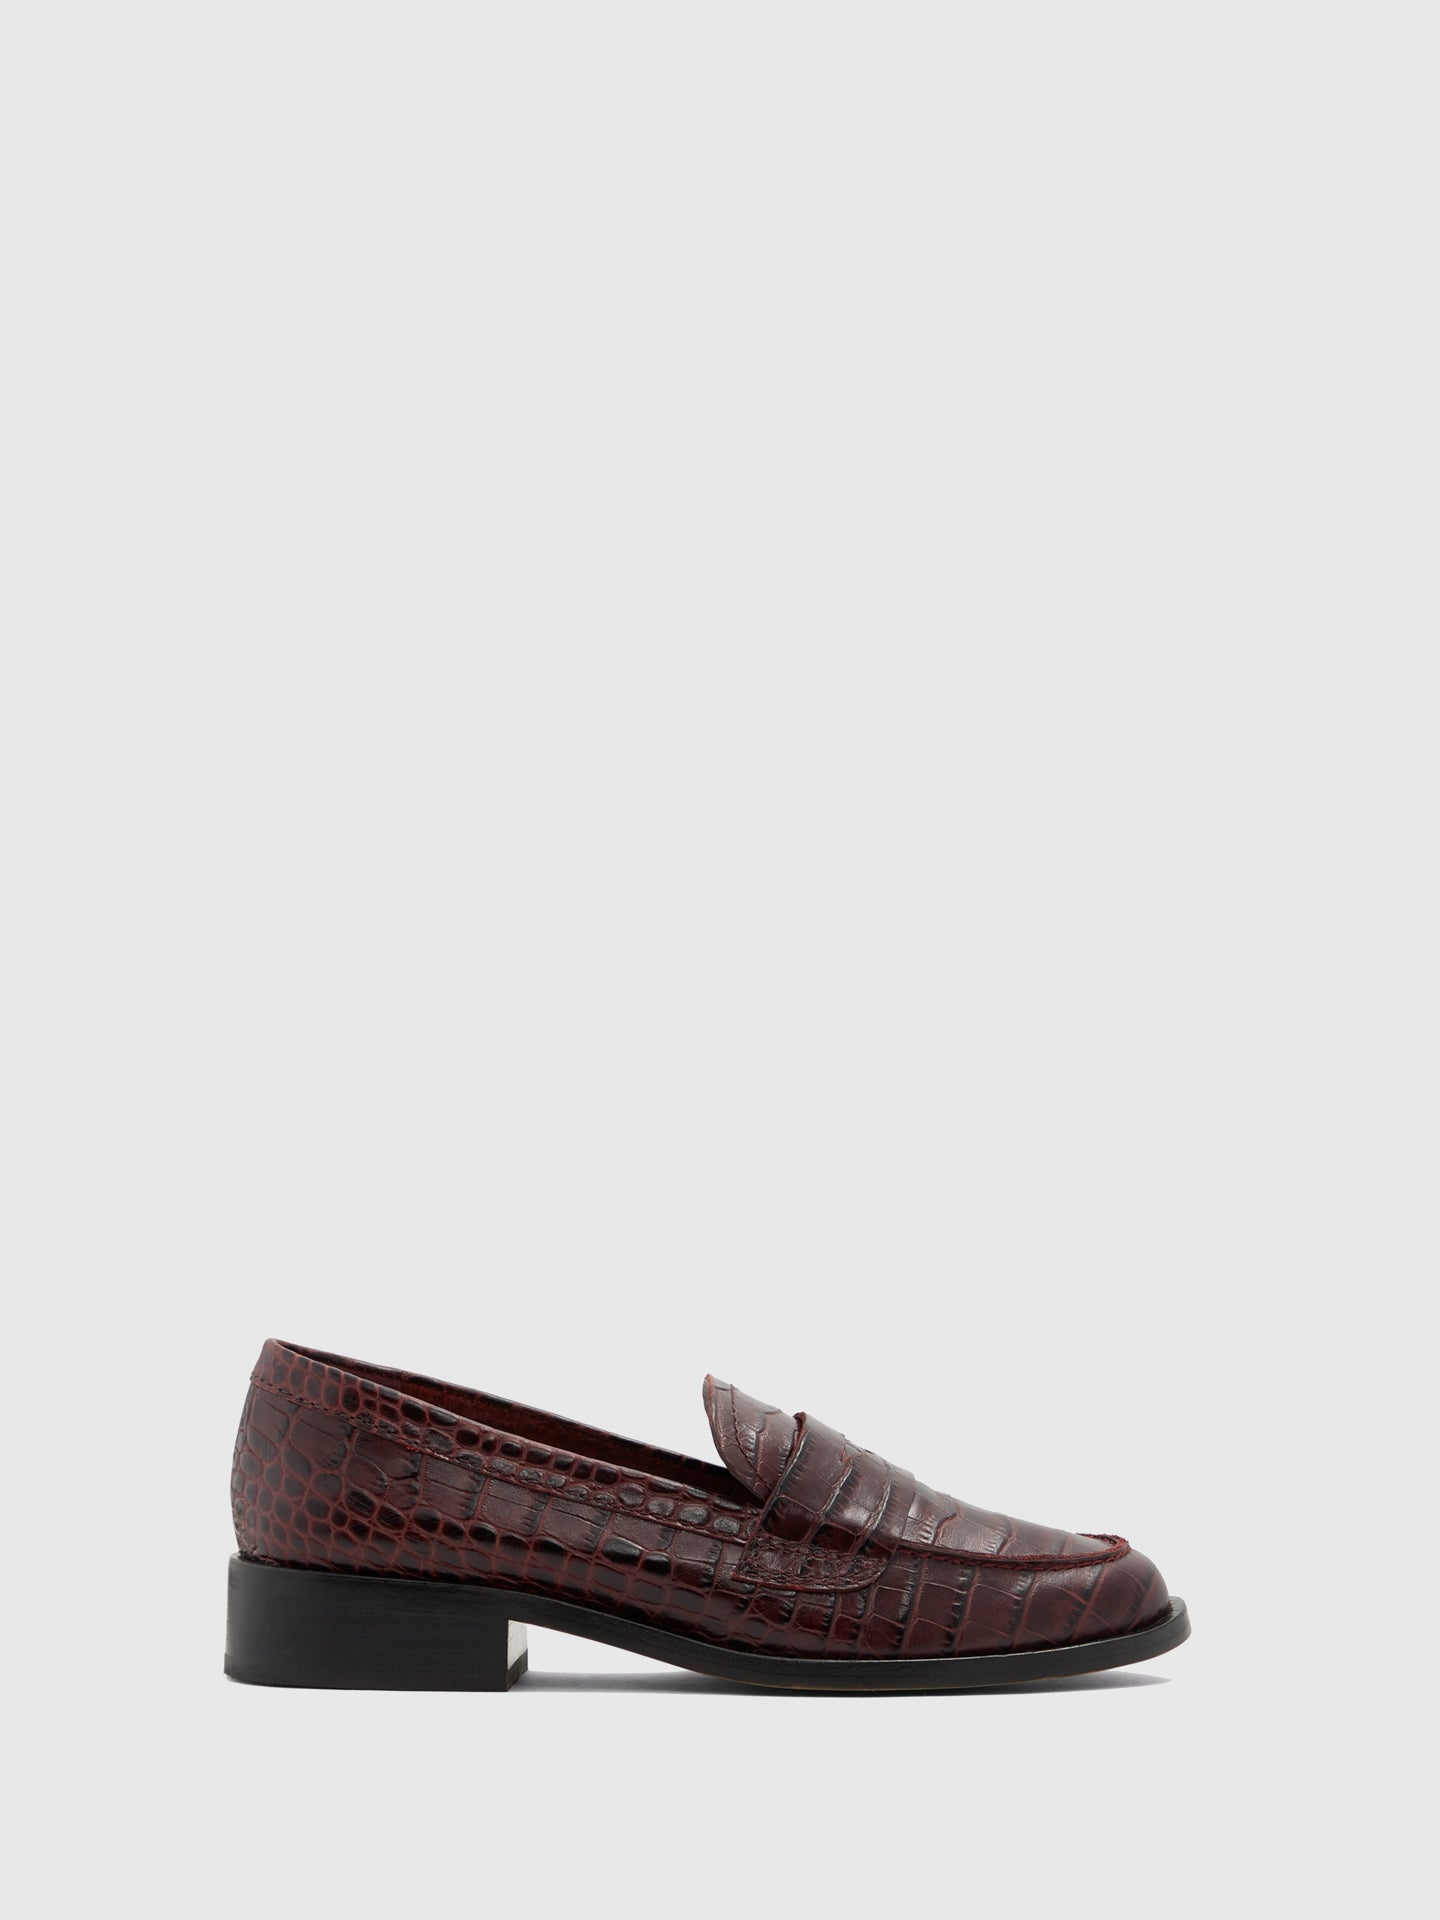 Aldo DarkRed Loafers Shoes